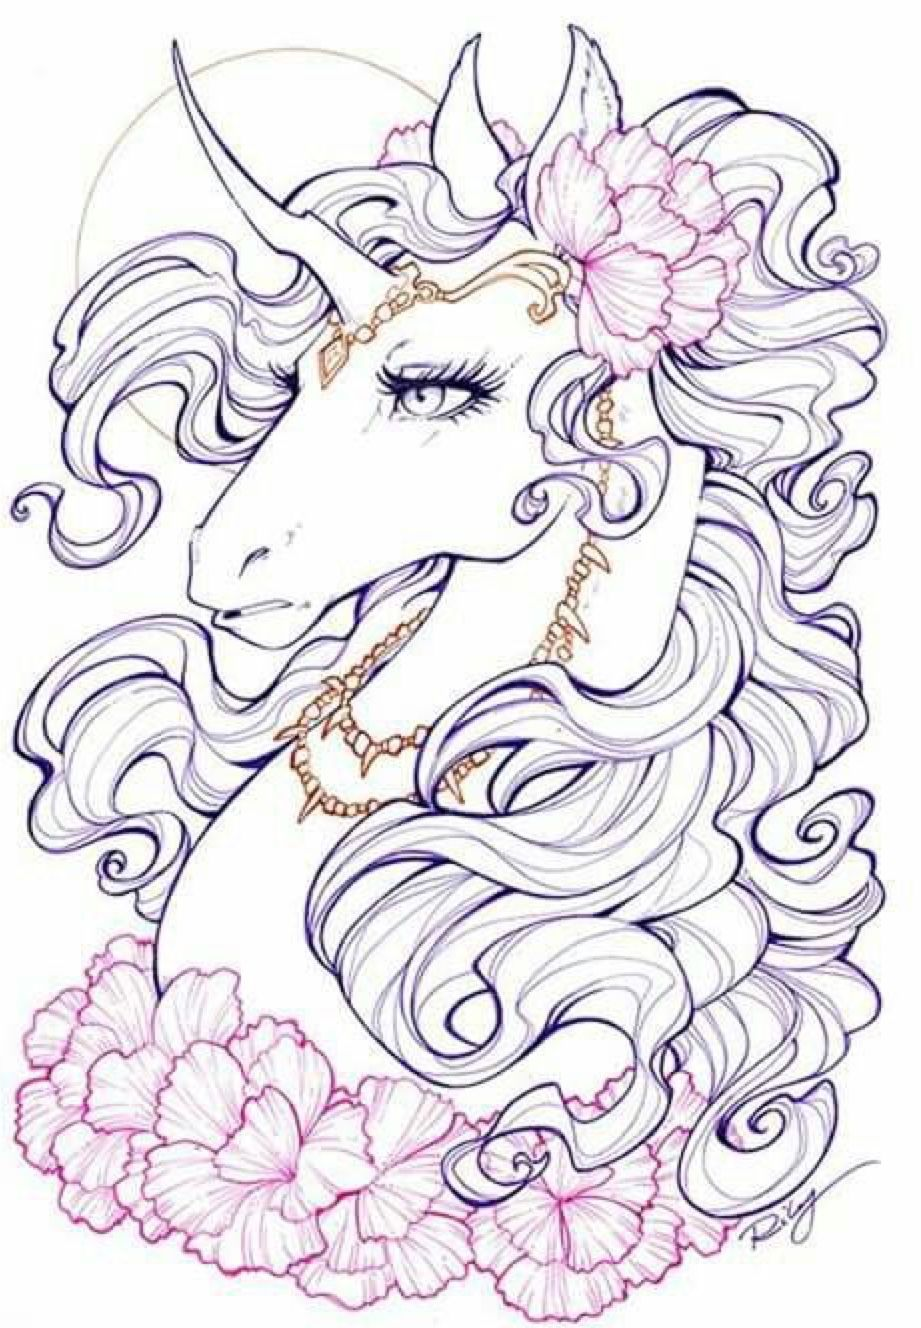 Pin By Rita Scaplehorn On Unicorns Unicorn Art Unicorn Pictures Dreamy Artwork